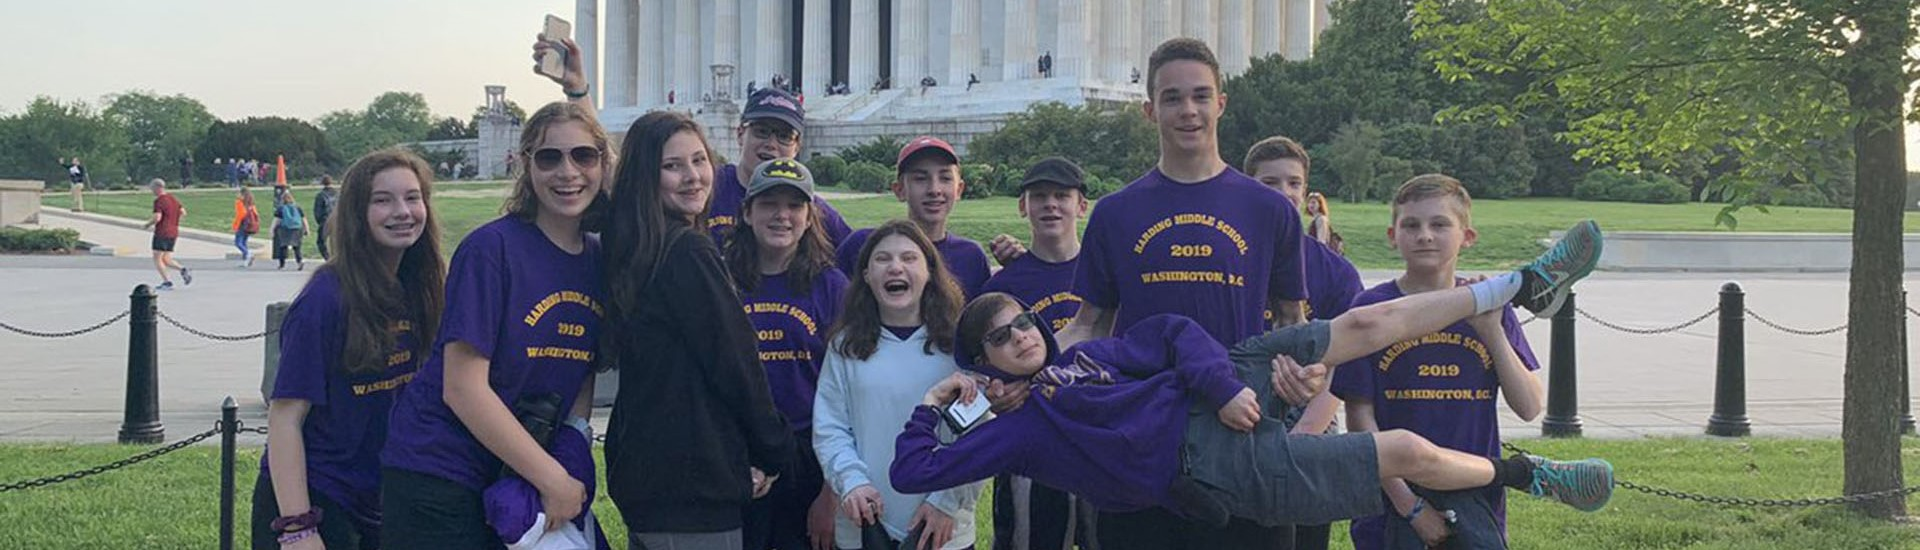 Harding 8th graders in D.C.